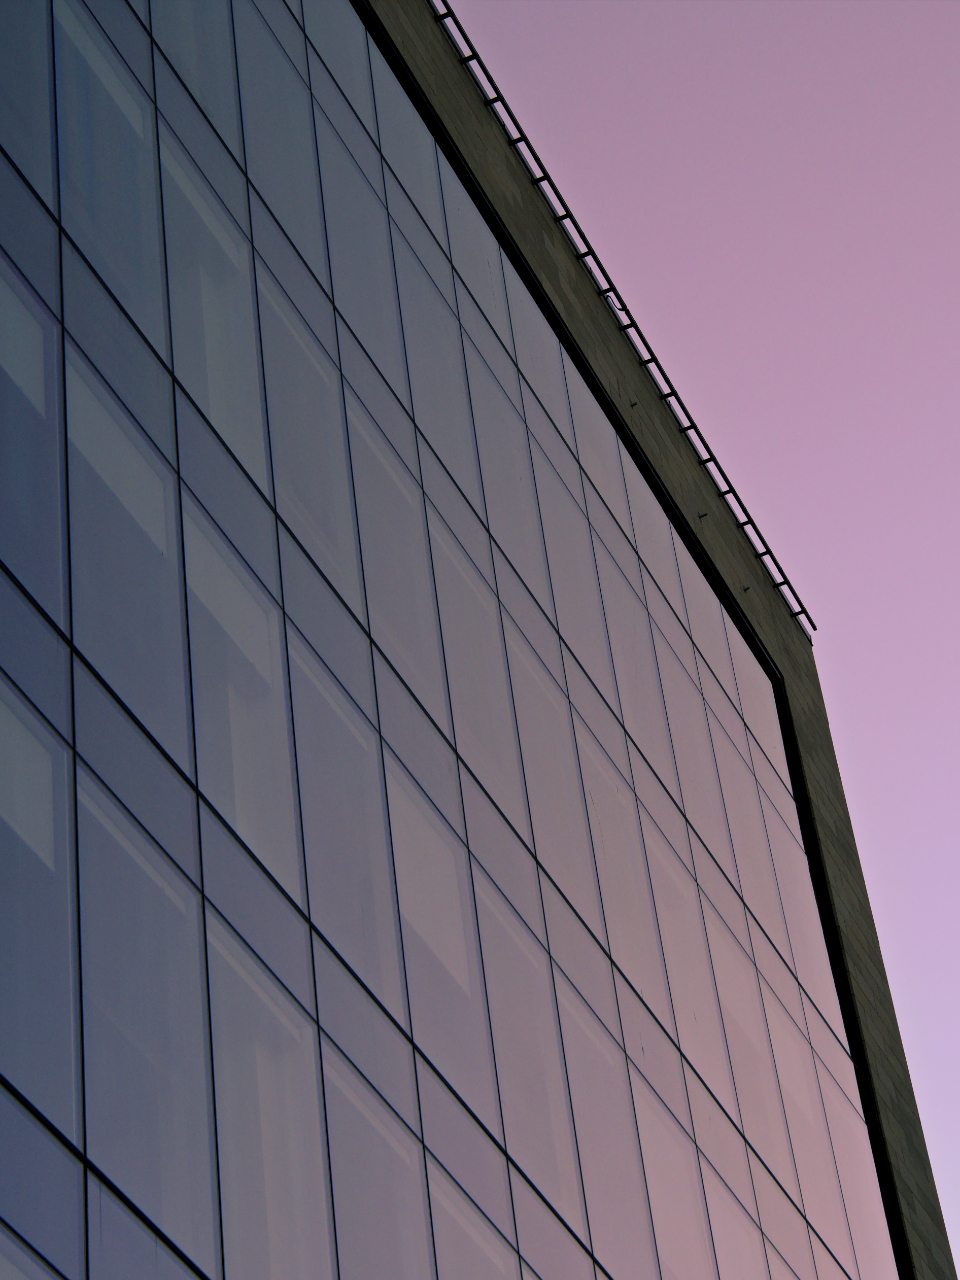 Free stock photo of modern building